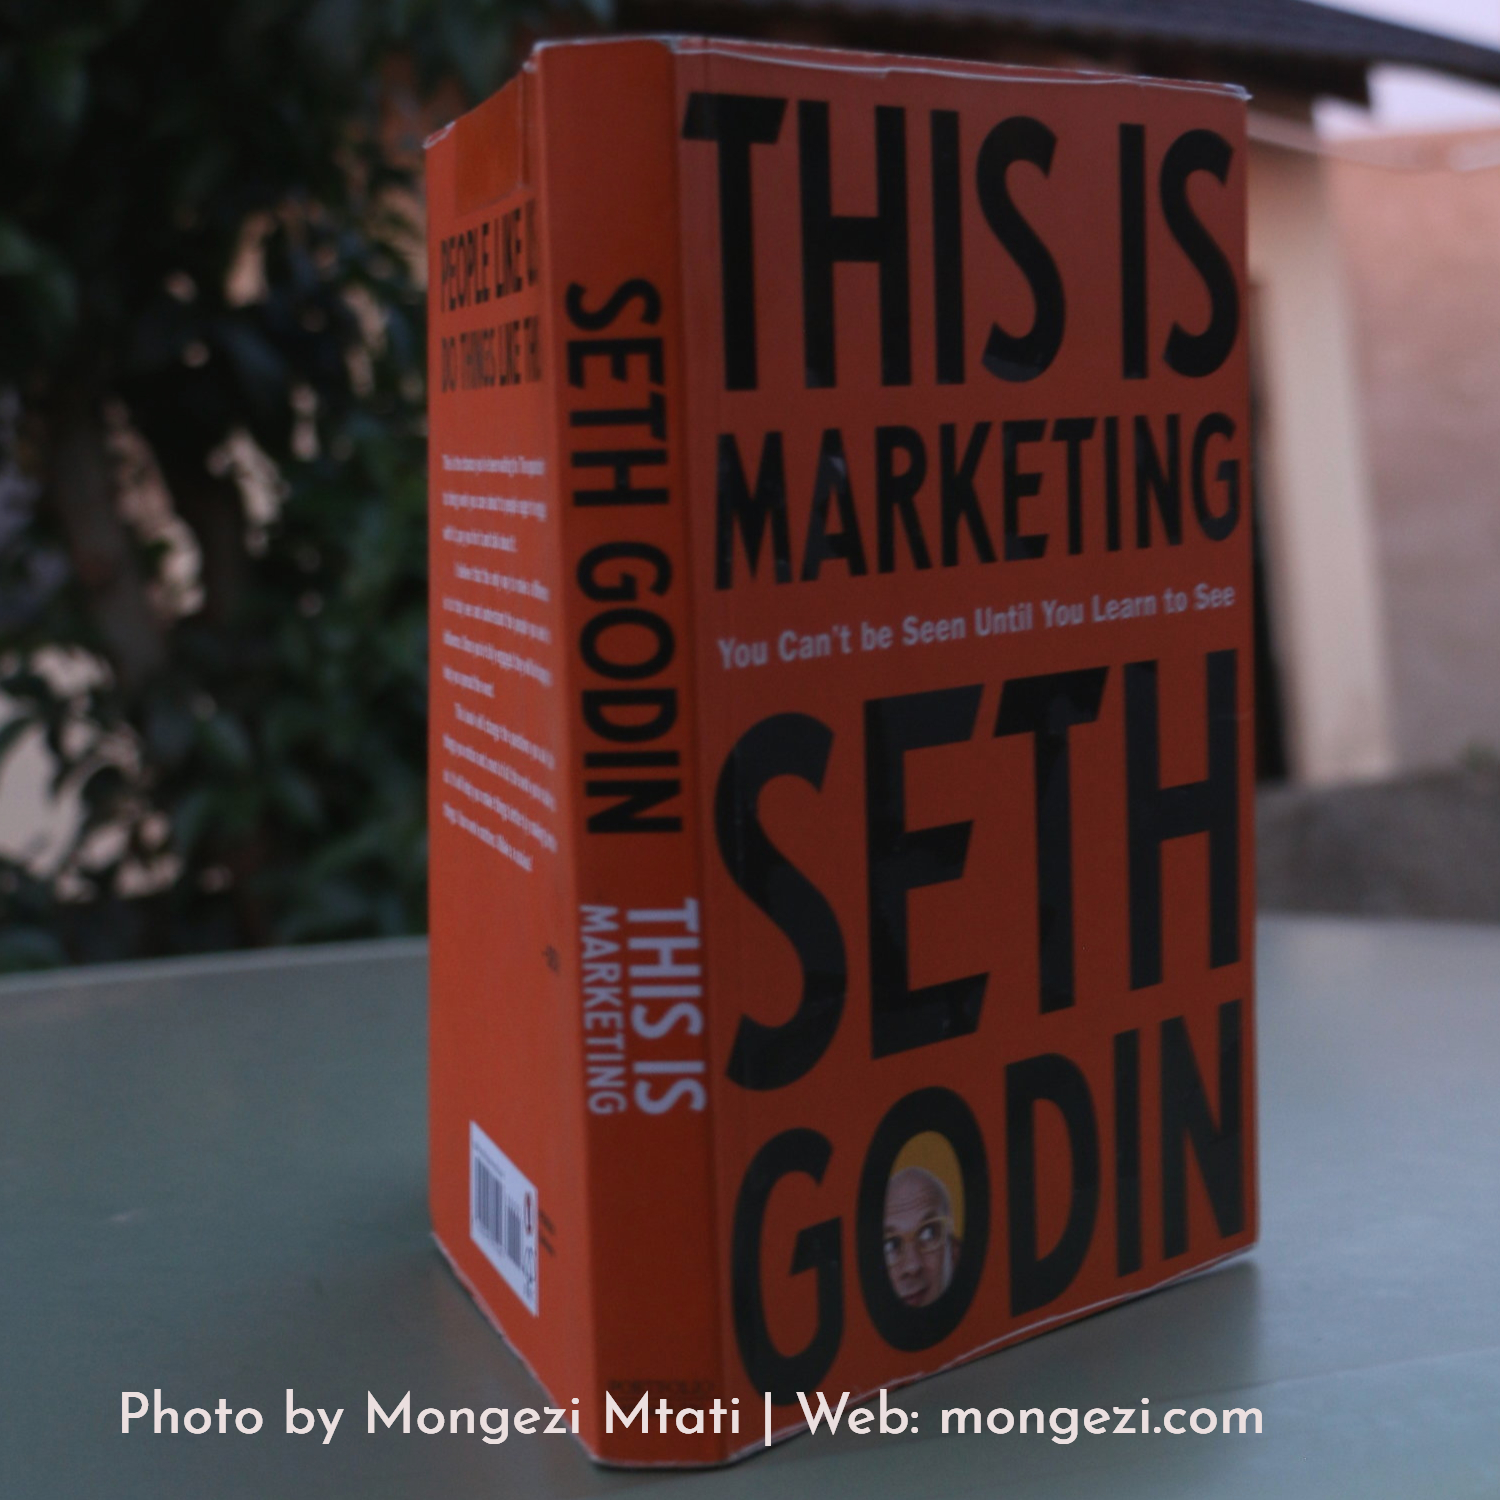 Focus on the Smallest Viable Market: This Is Marketing by Seth Godin